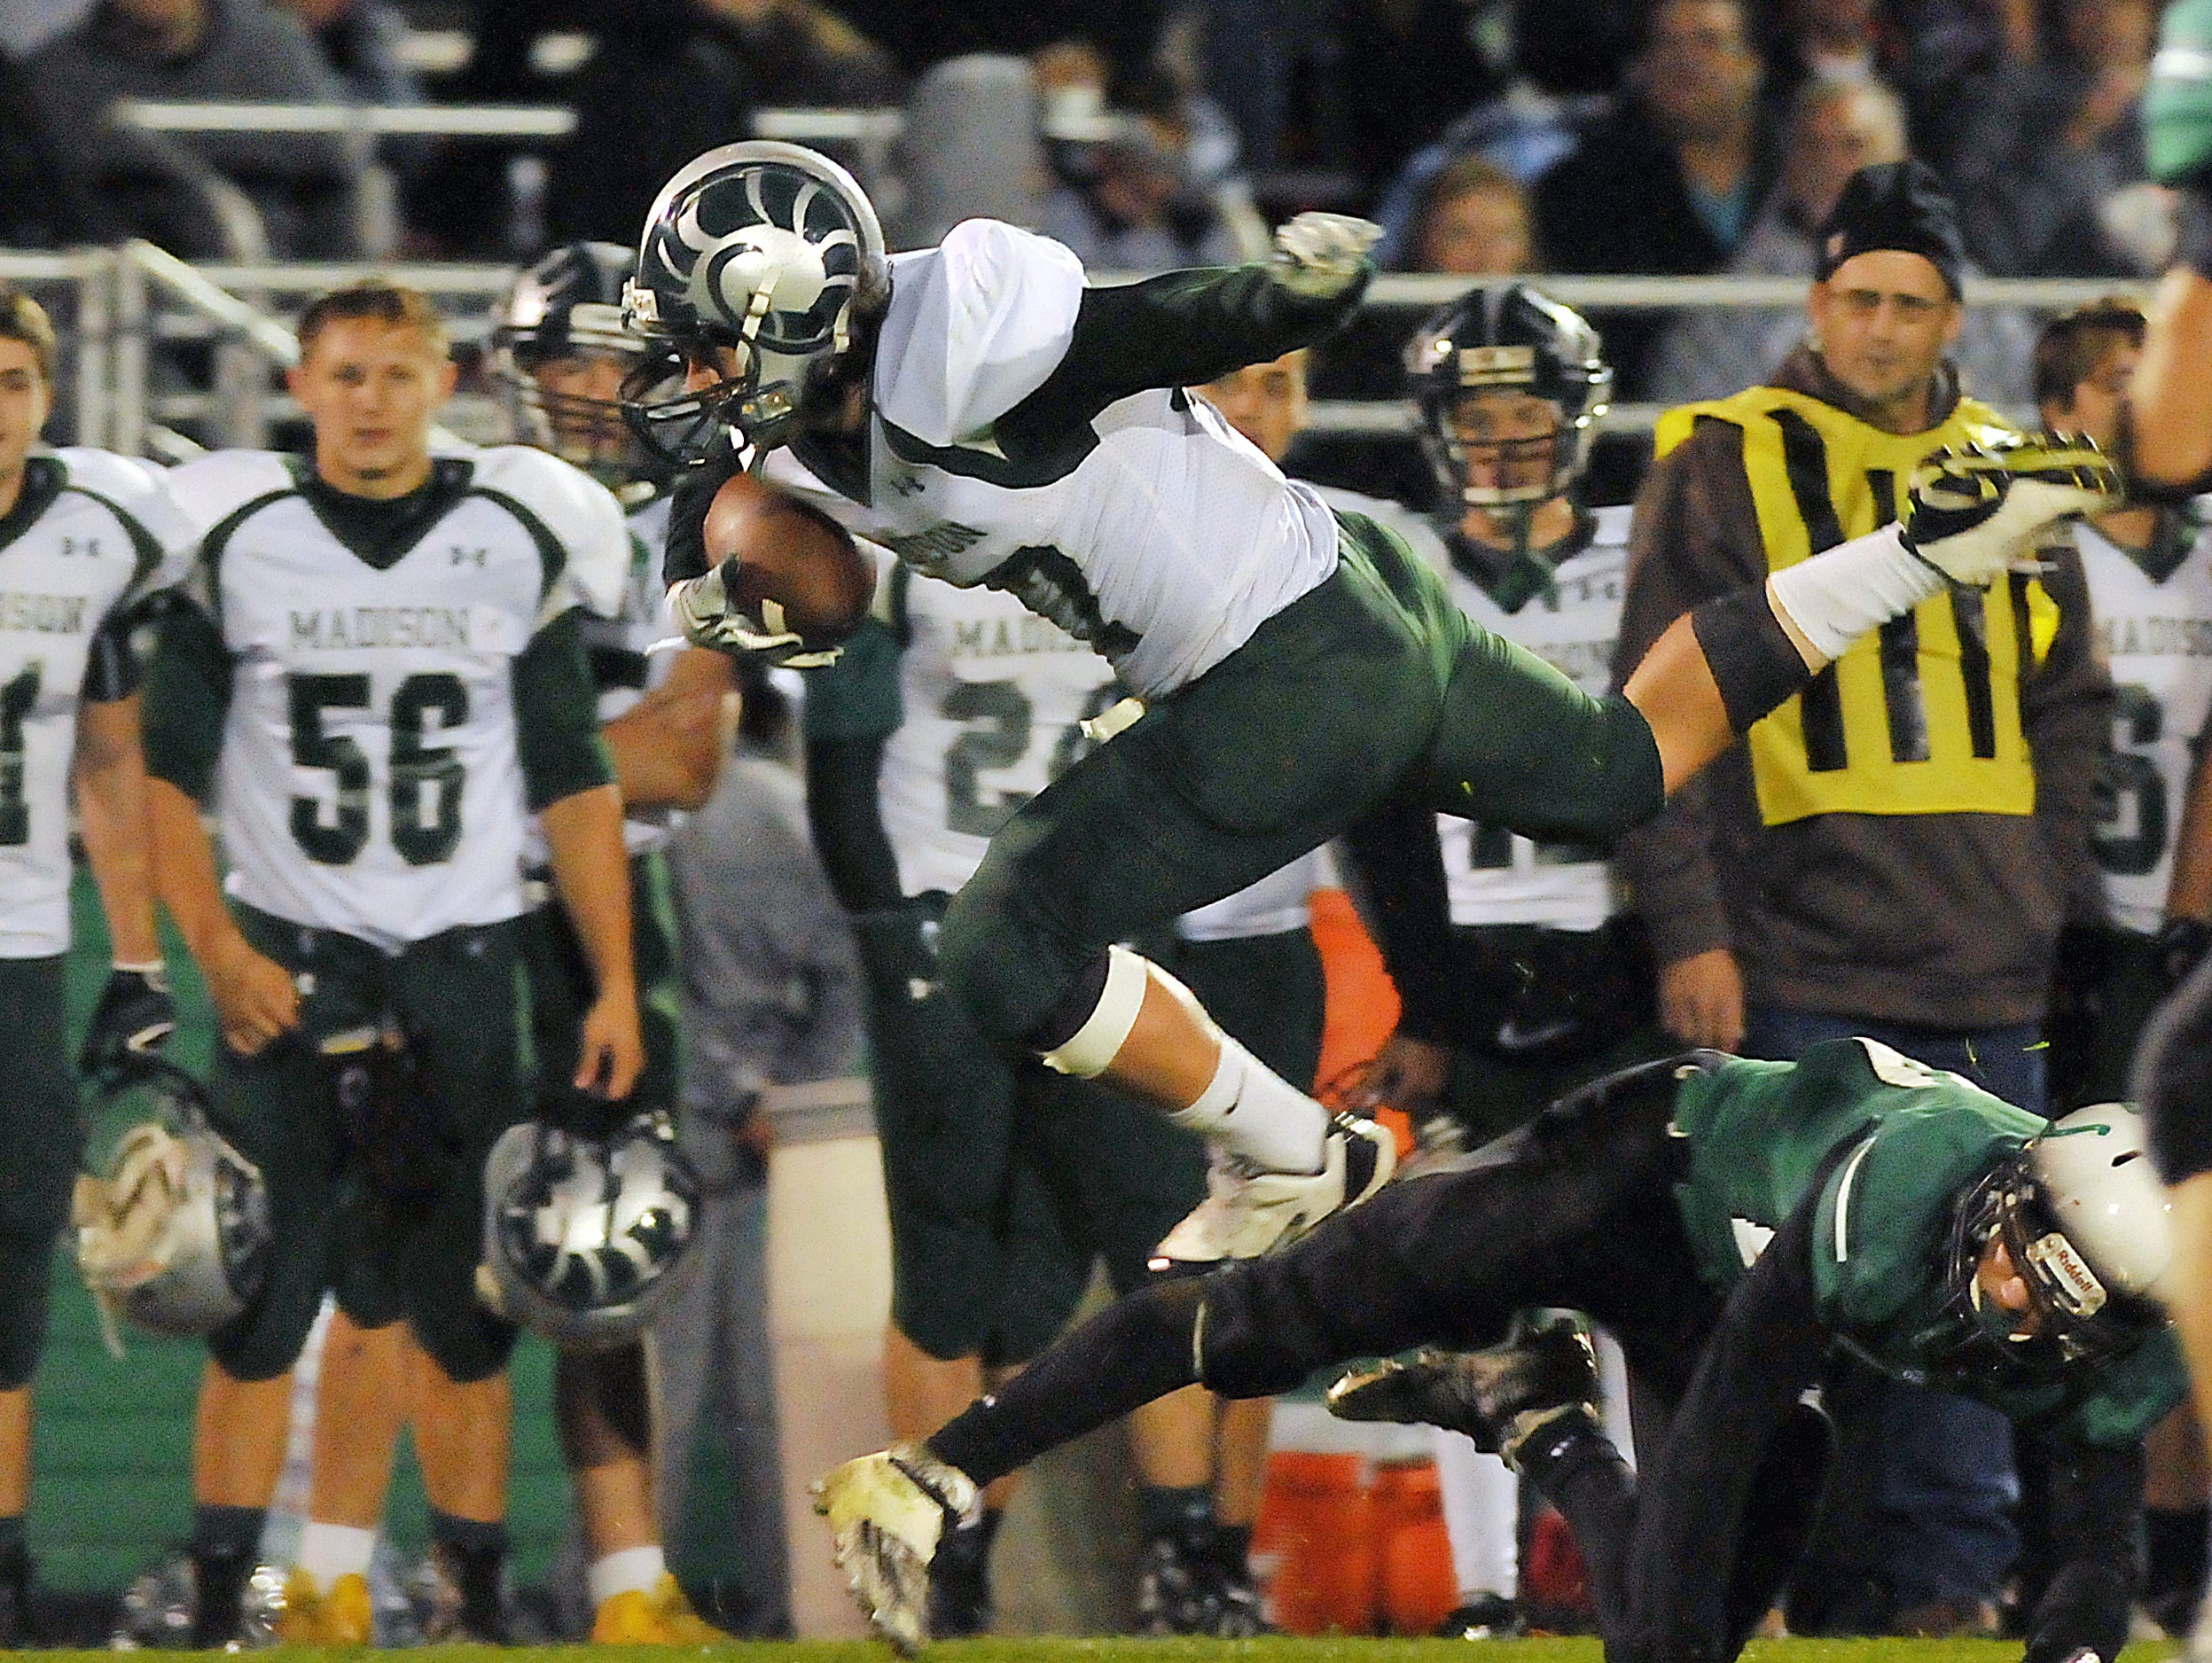 Madison's Justice Cains hurdles a Clear Fork Defender during game Friday night at Clear Fork.